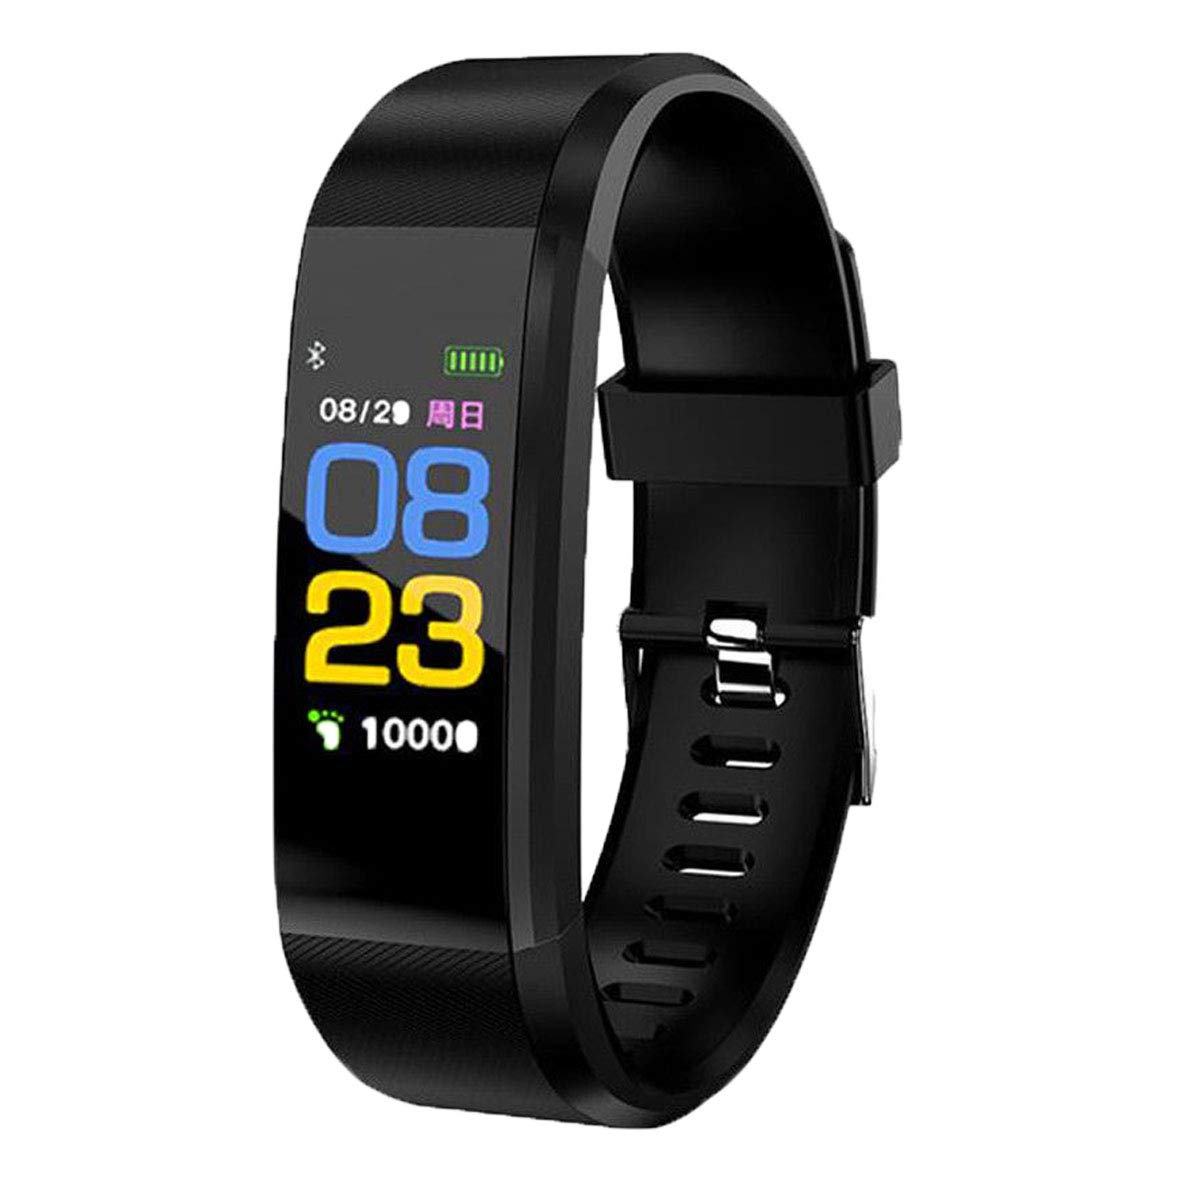 Cozyroom Heart Rate Monitor Customized Activity Fitness Tracker Smart Bracelet Wristband Wireless Smart Watch Sports Activity Tracker Compatible iOS and Android for Girls Children Women Men